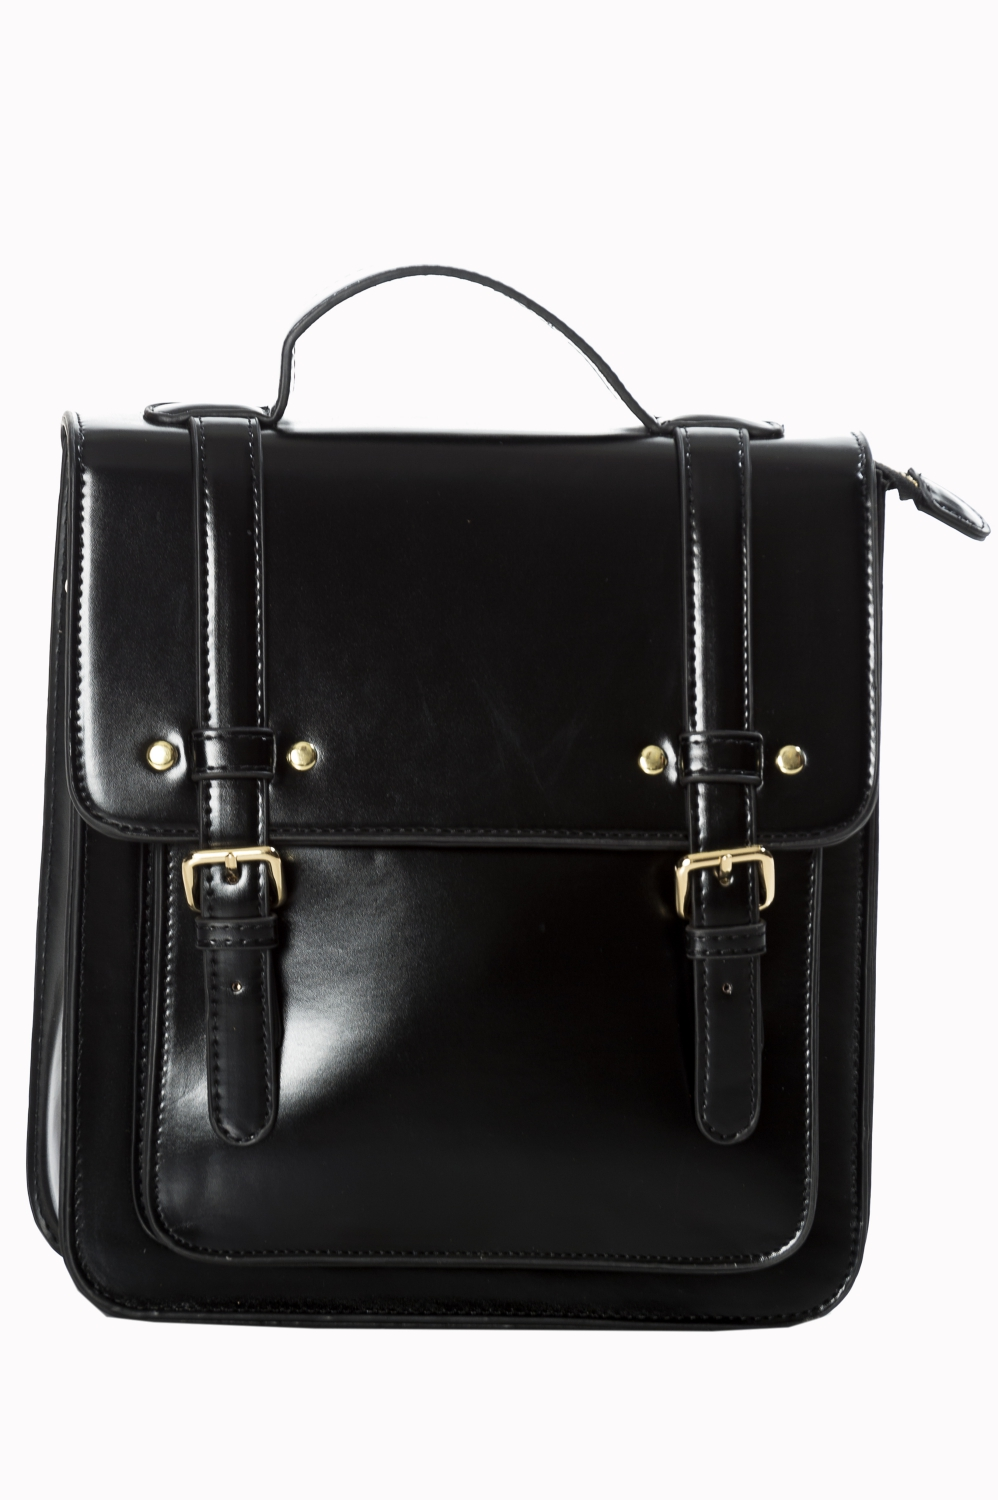 Banned Retro 60s Cohen Black Handbag